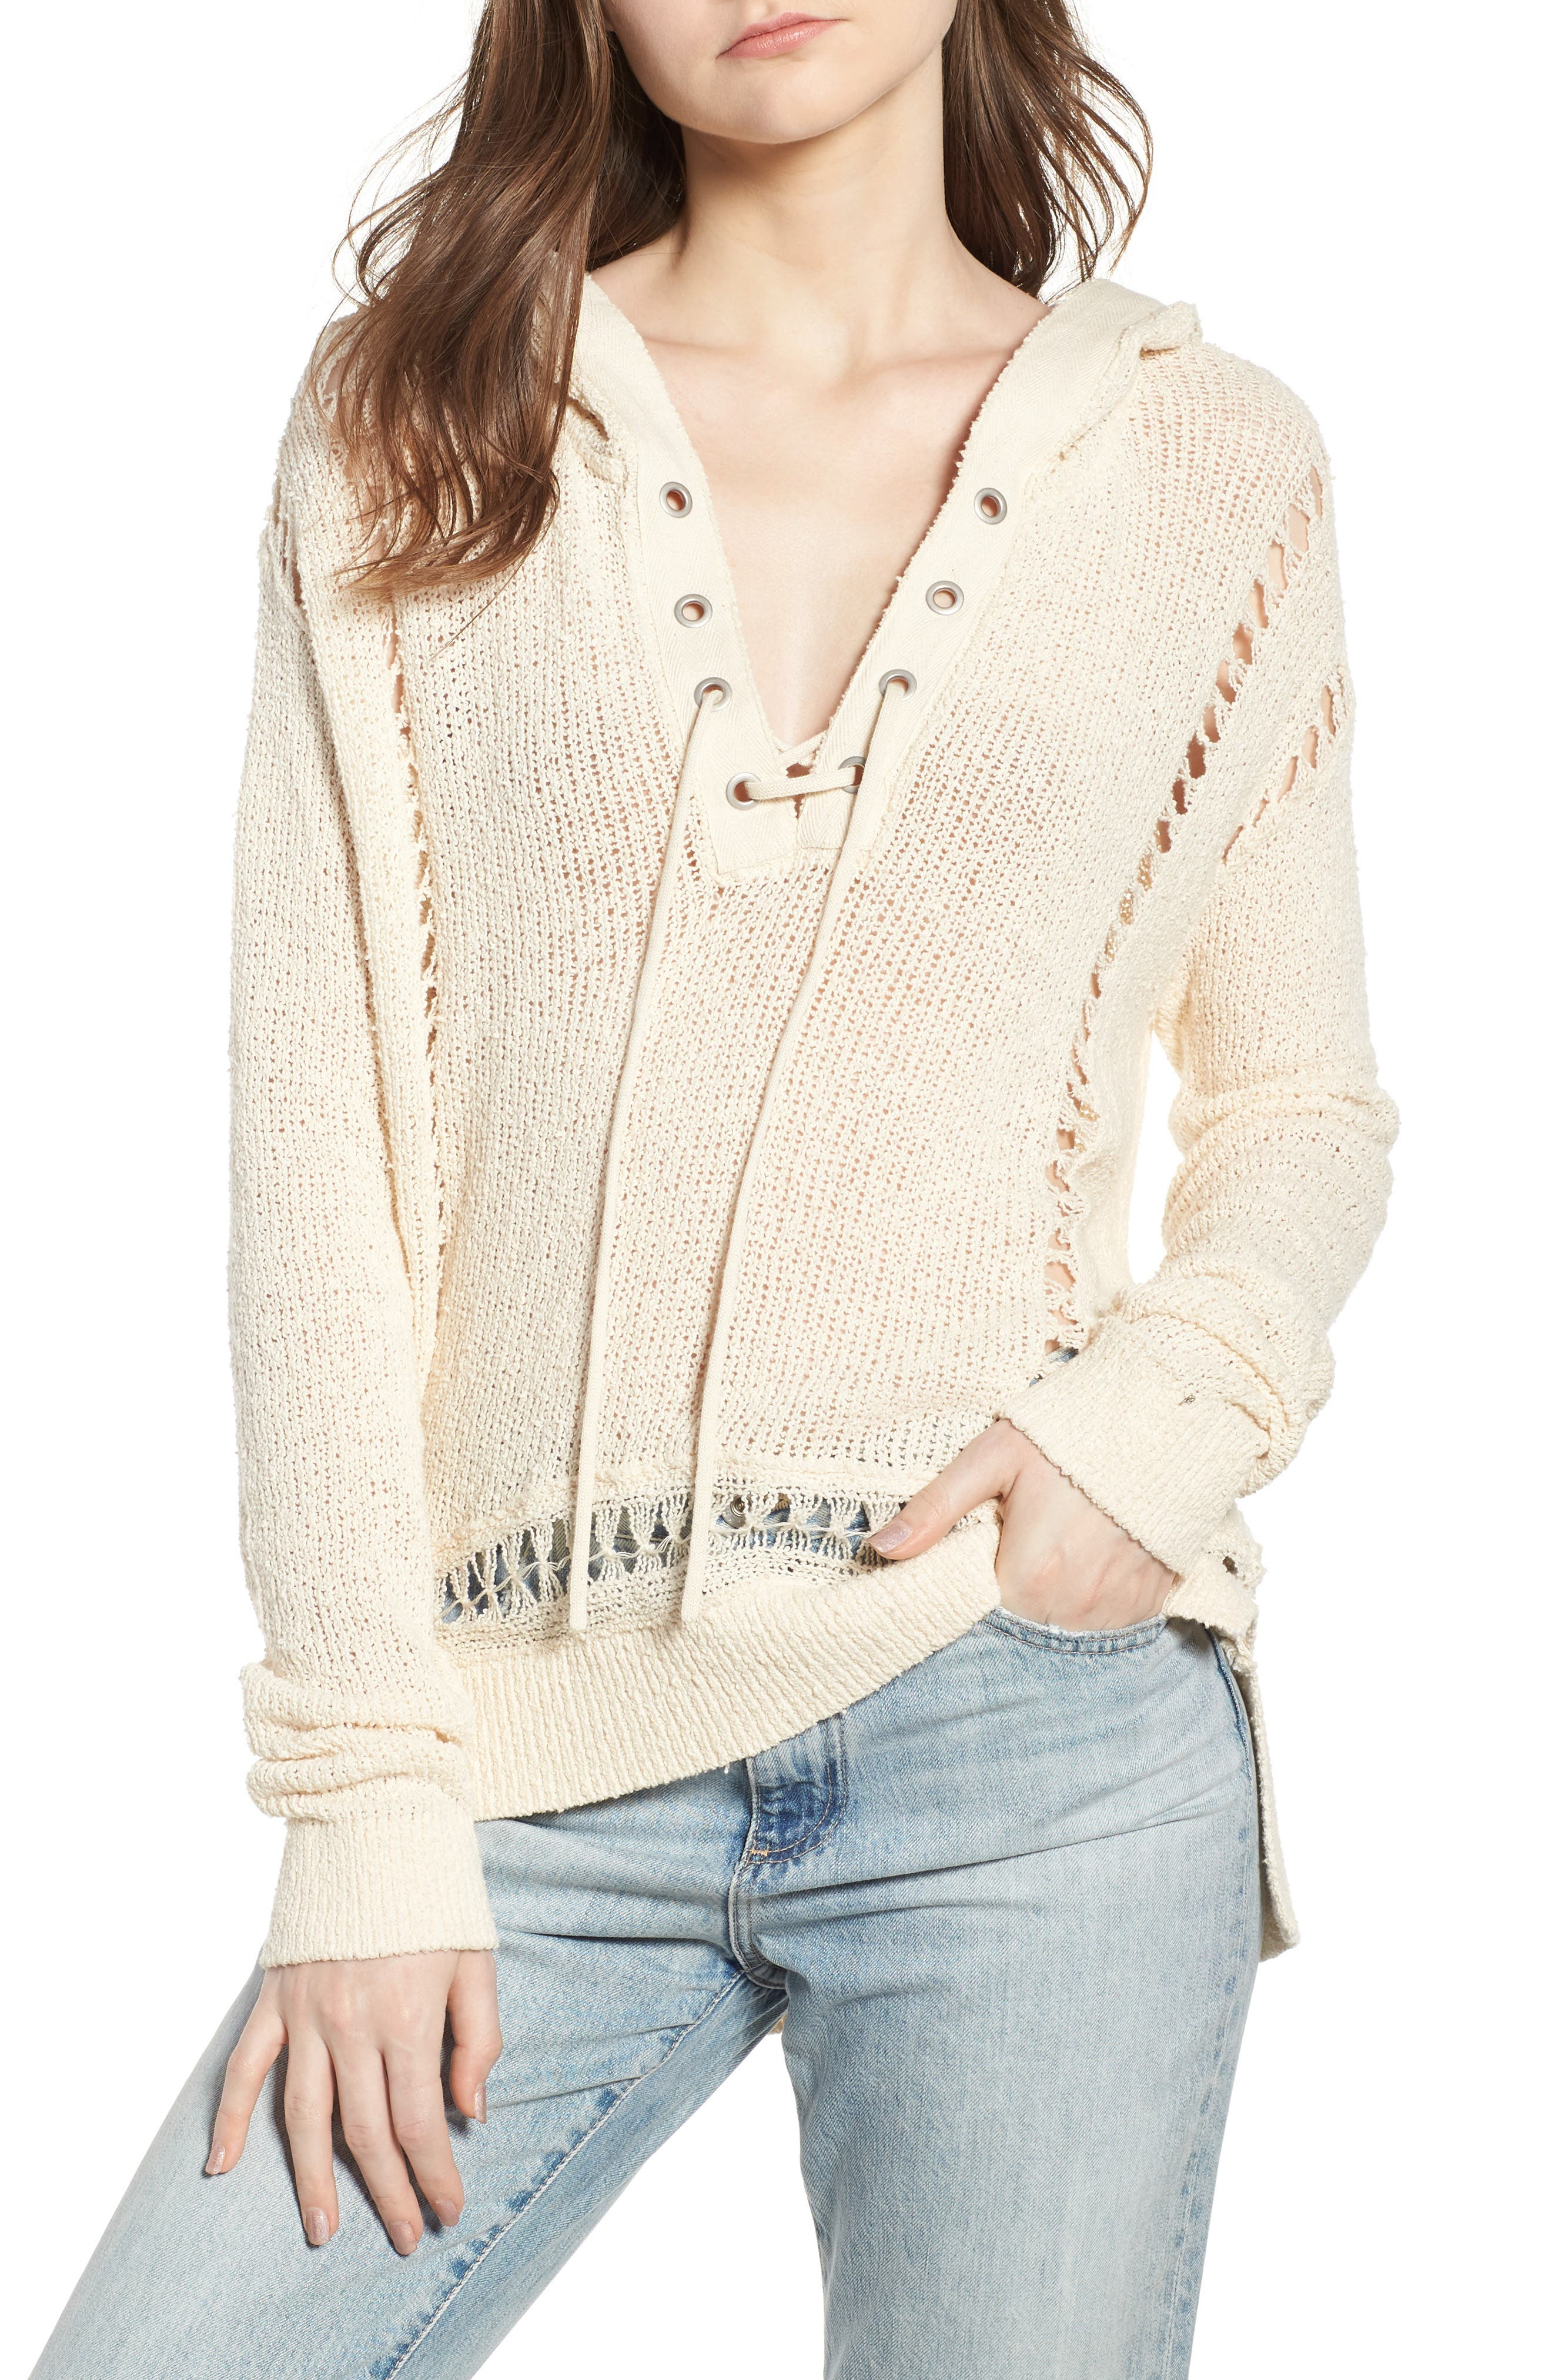 Oversize Beach Hoodie,                         Main,                         color, Color 0402 Antique White